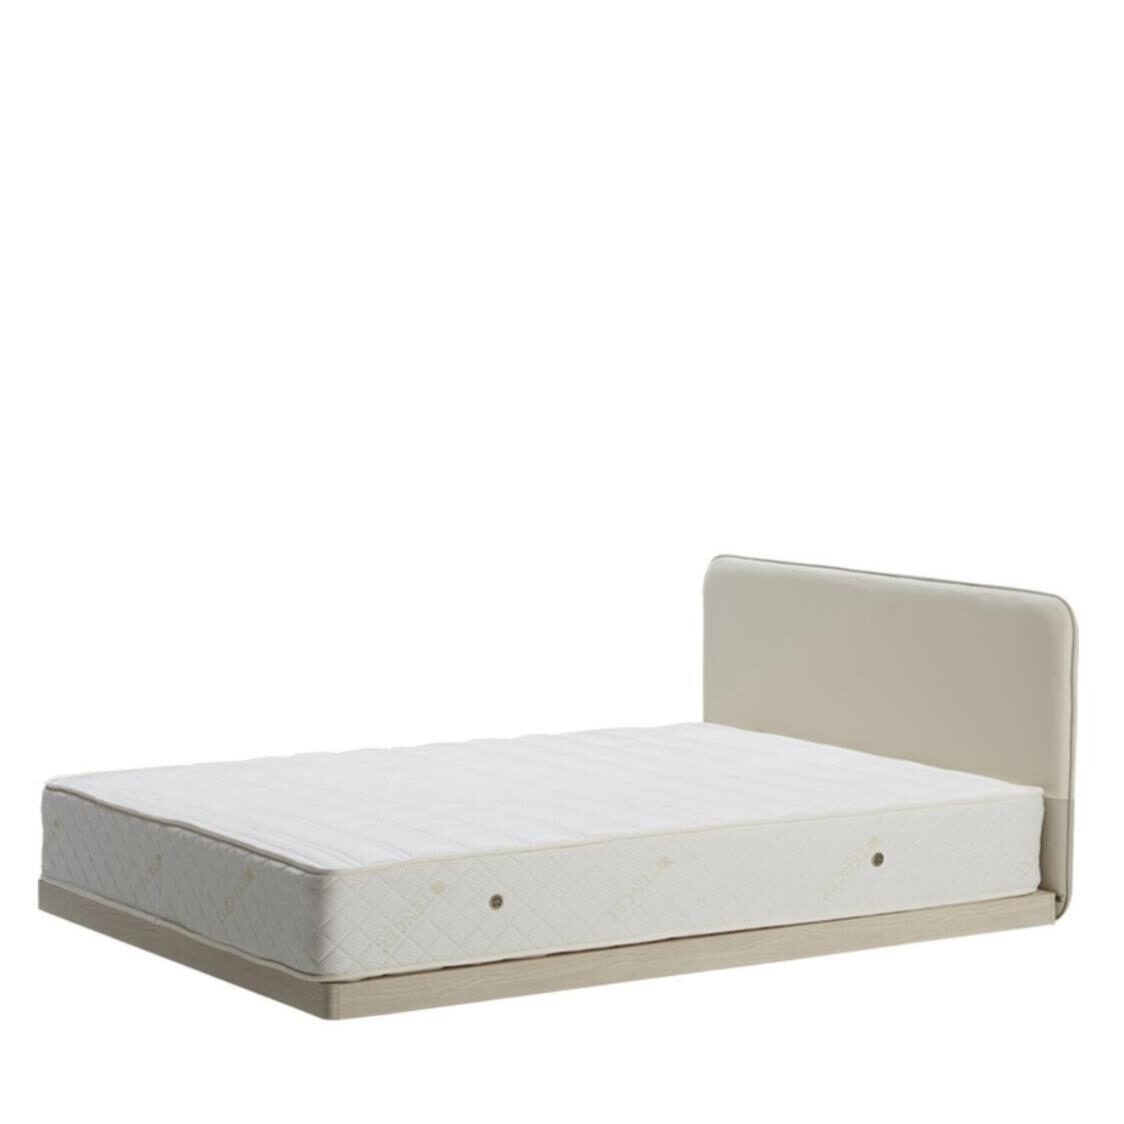 iloom Cusino Lower Type Bed A4210 Queen